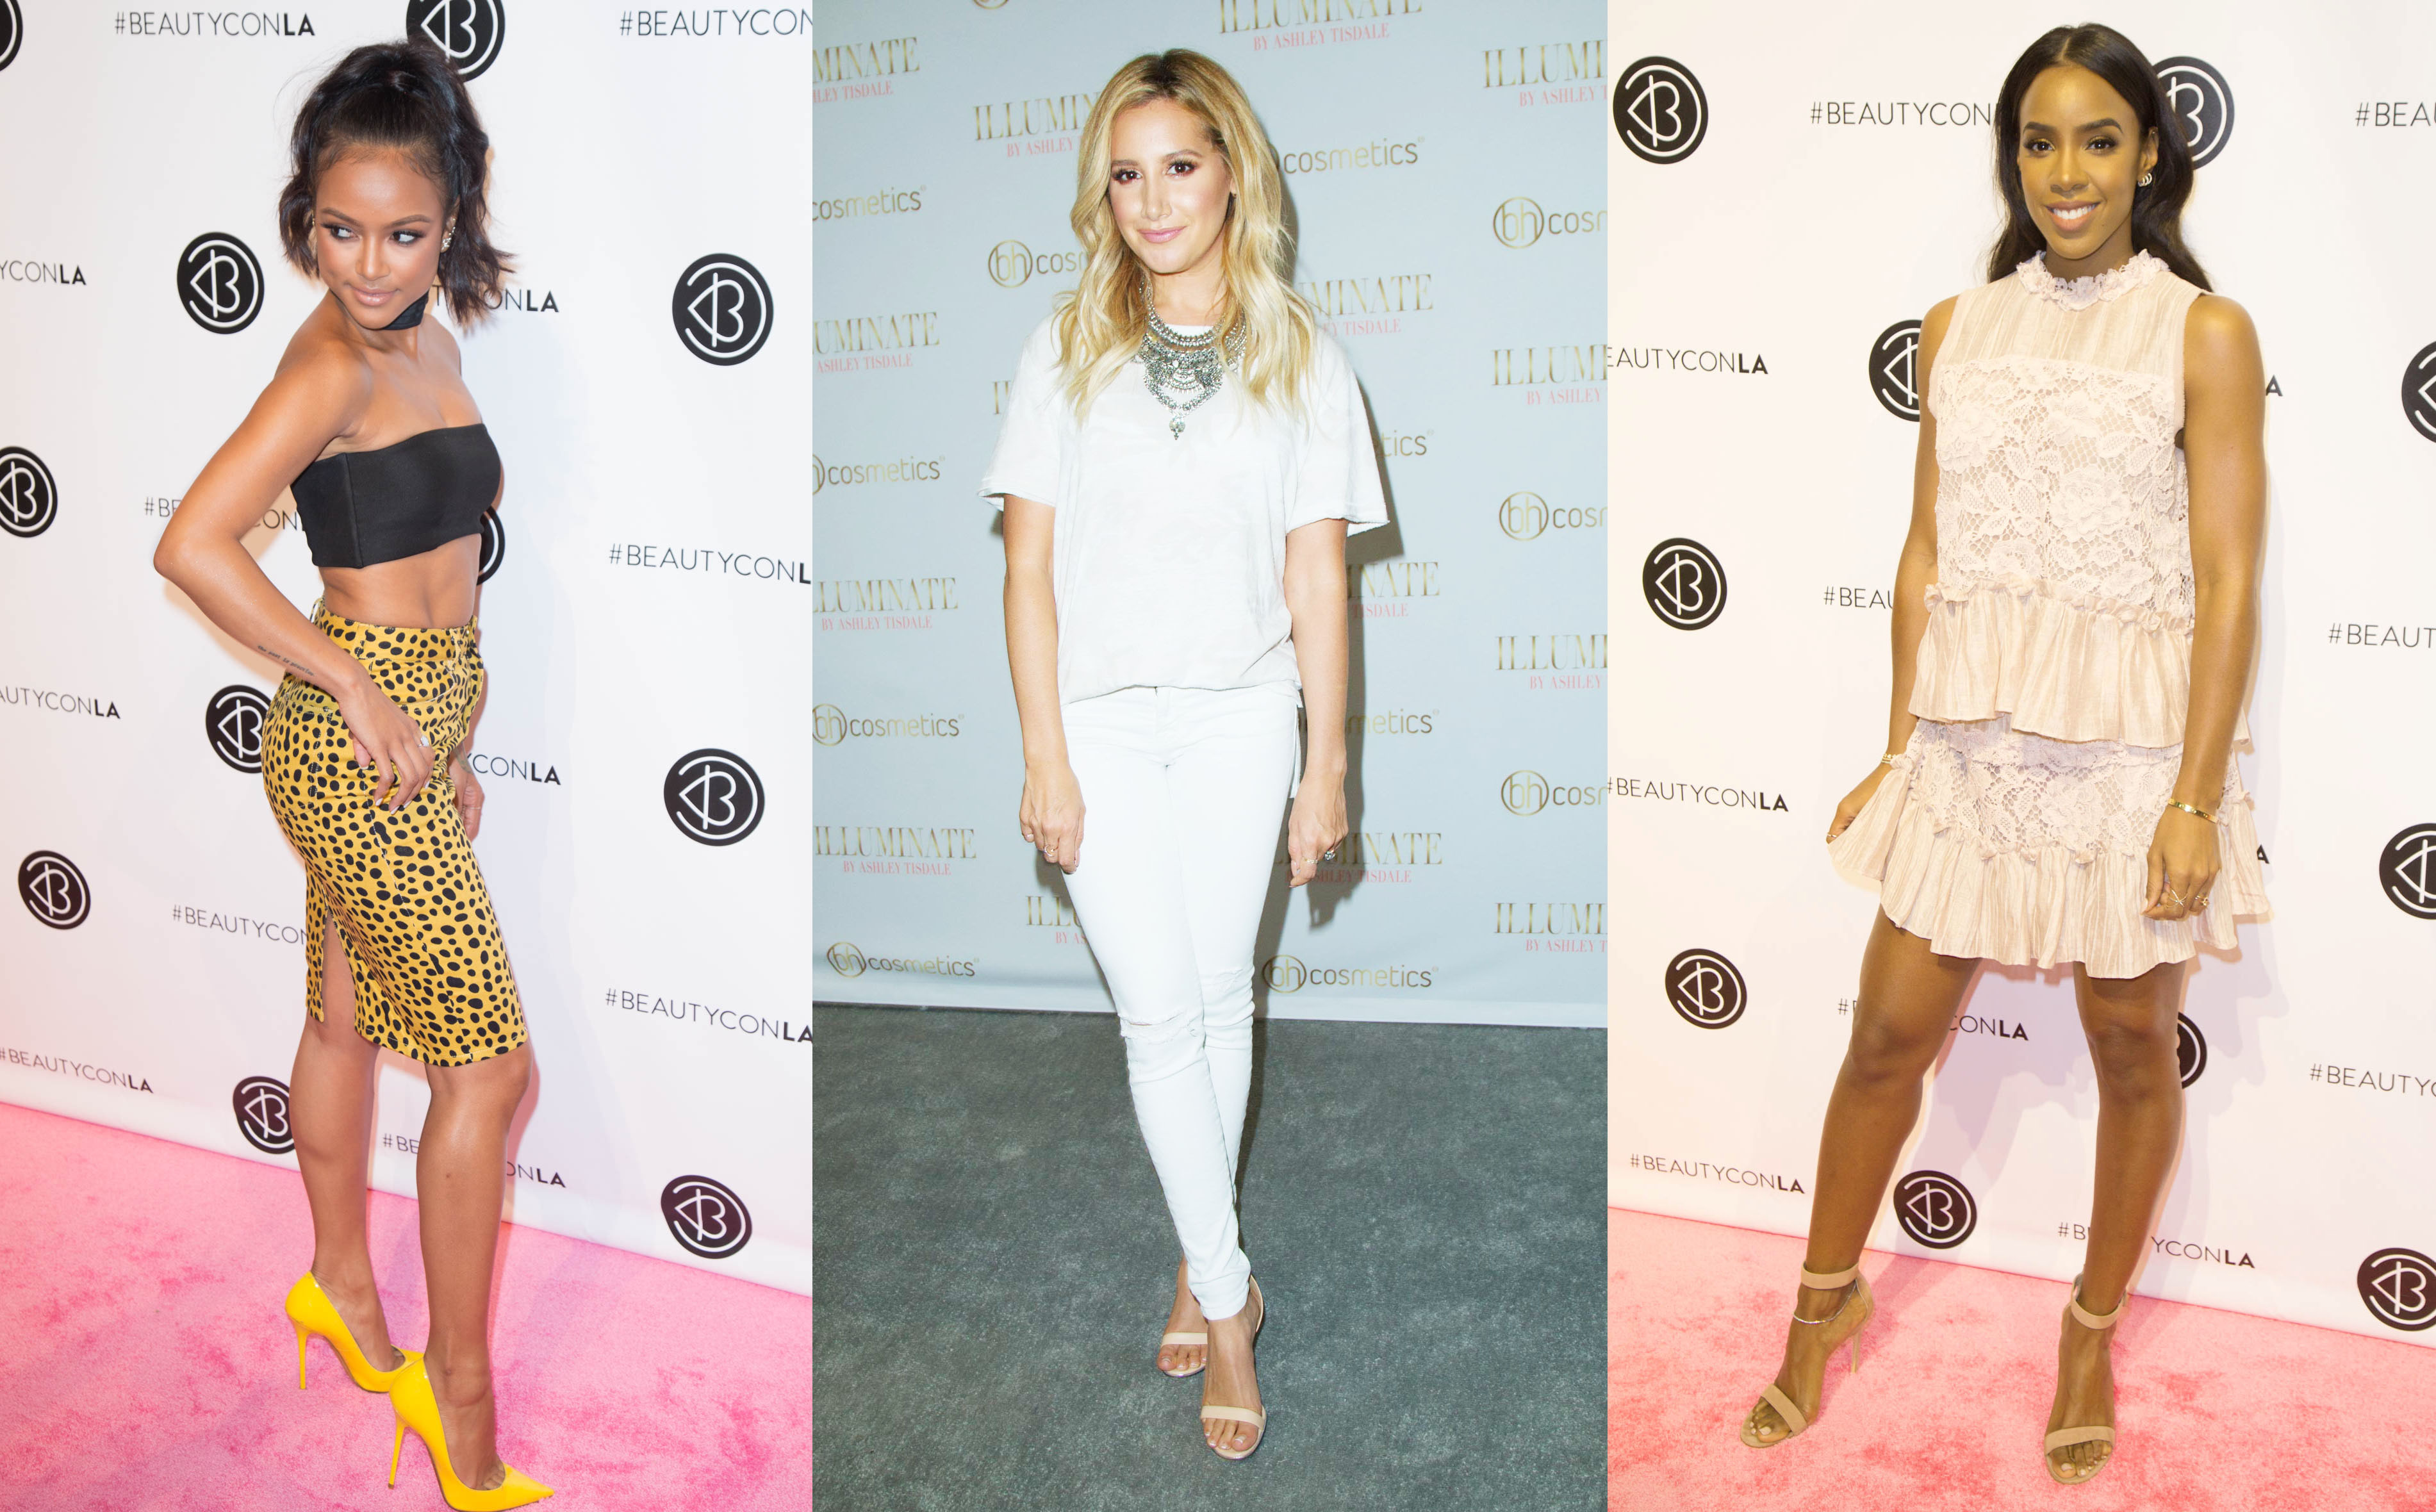 Karrueche Tran - Ashley Tisdale  - Kelly Rowland